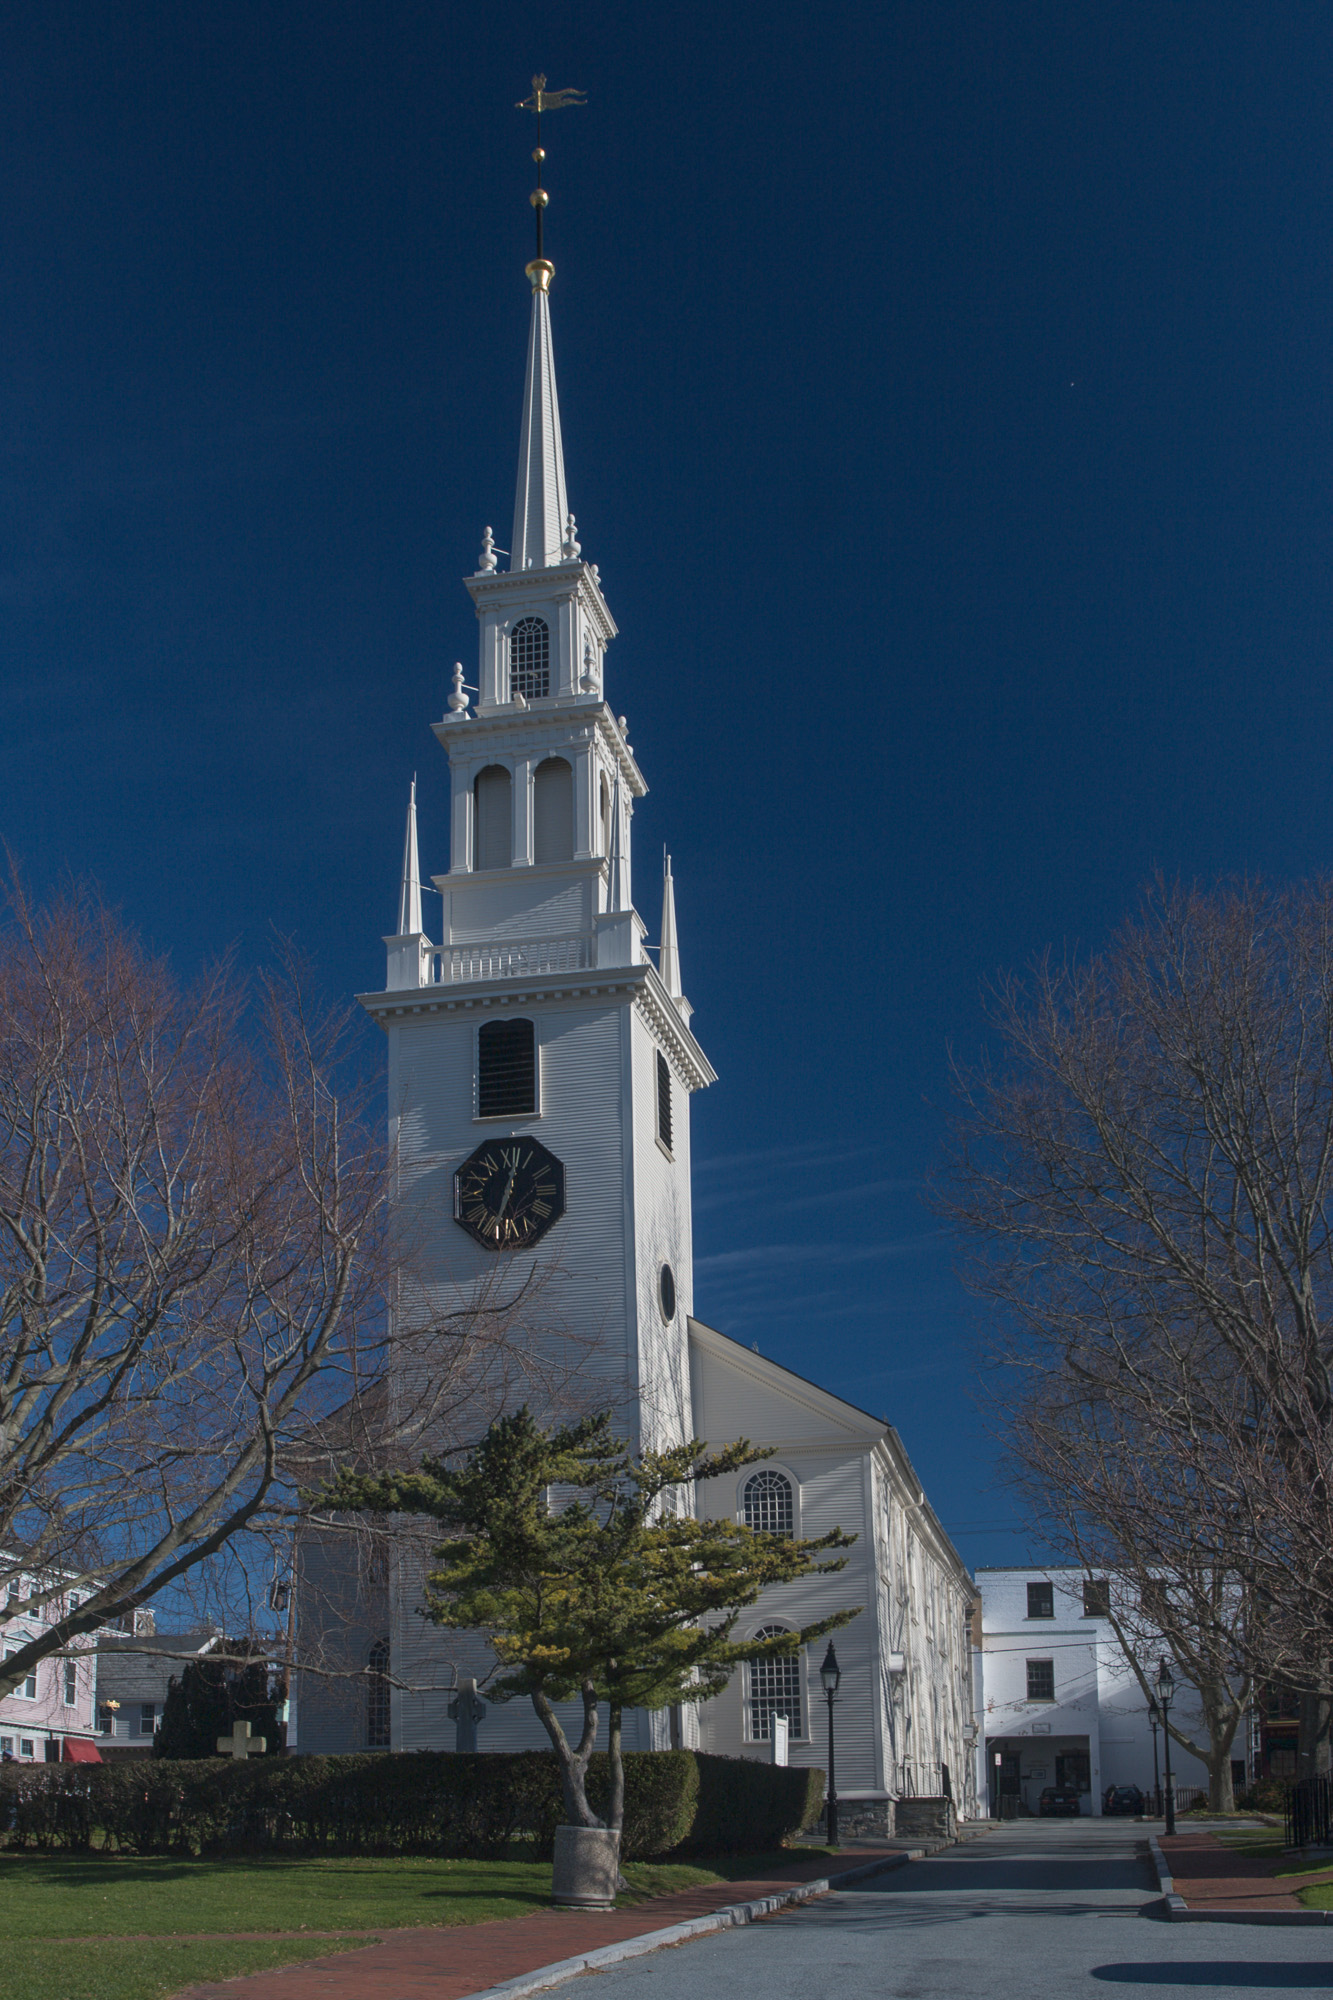 Trinity Church's steeple has been a fixture on Newport's skyline since 1741.